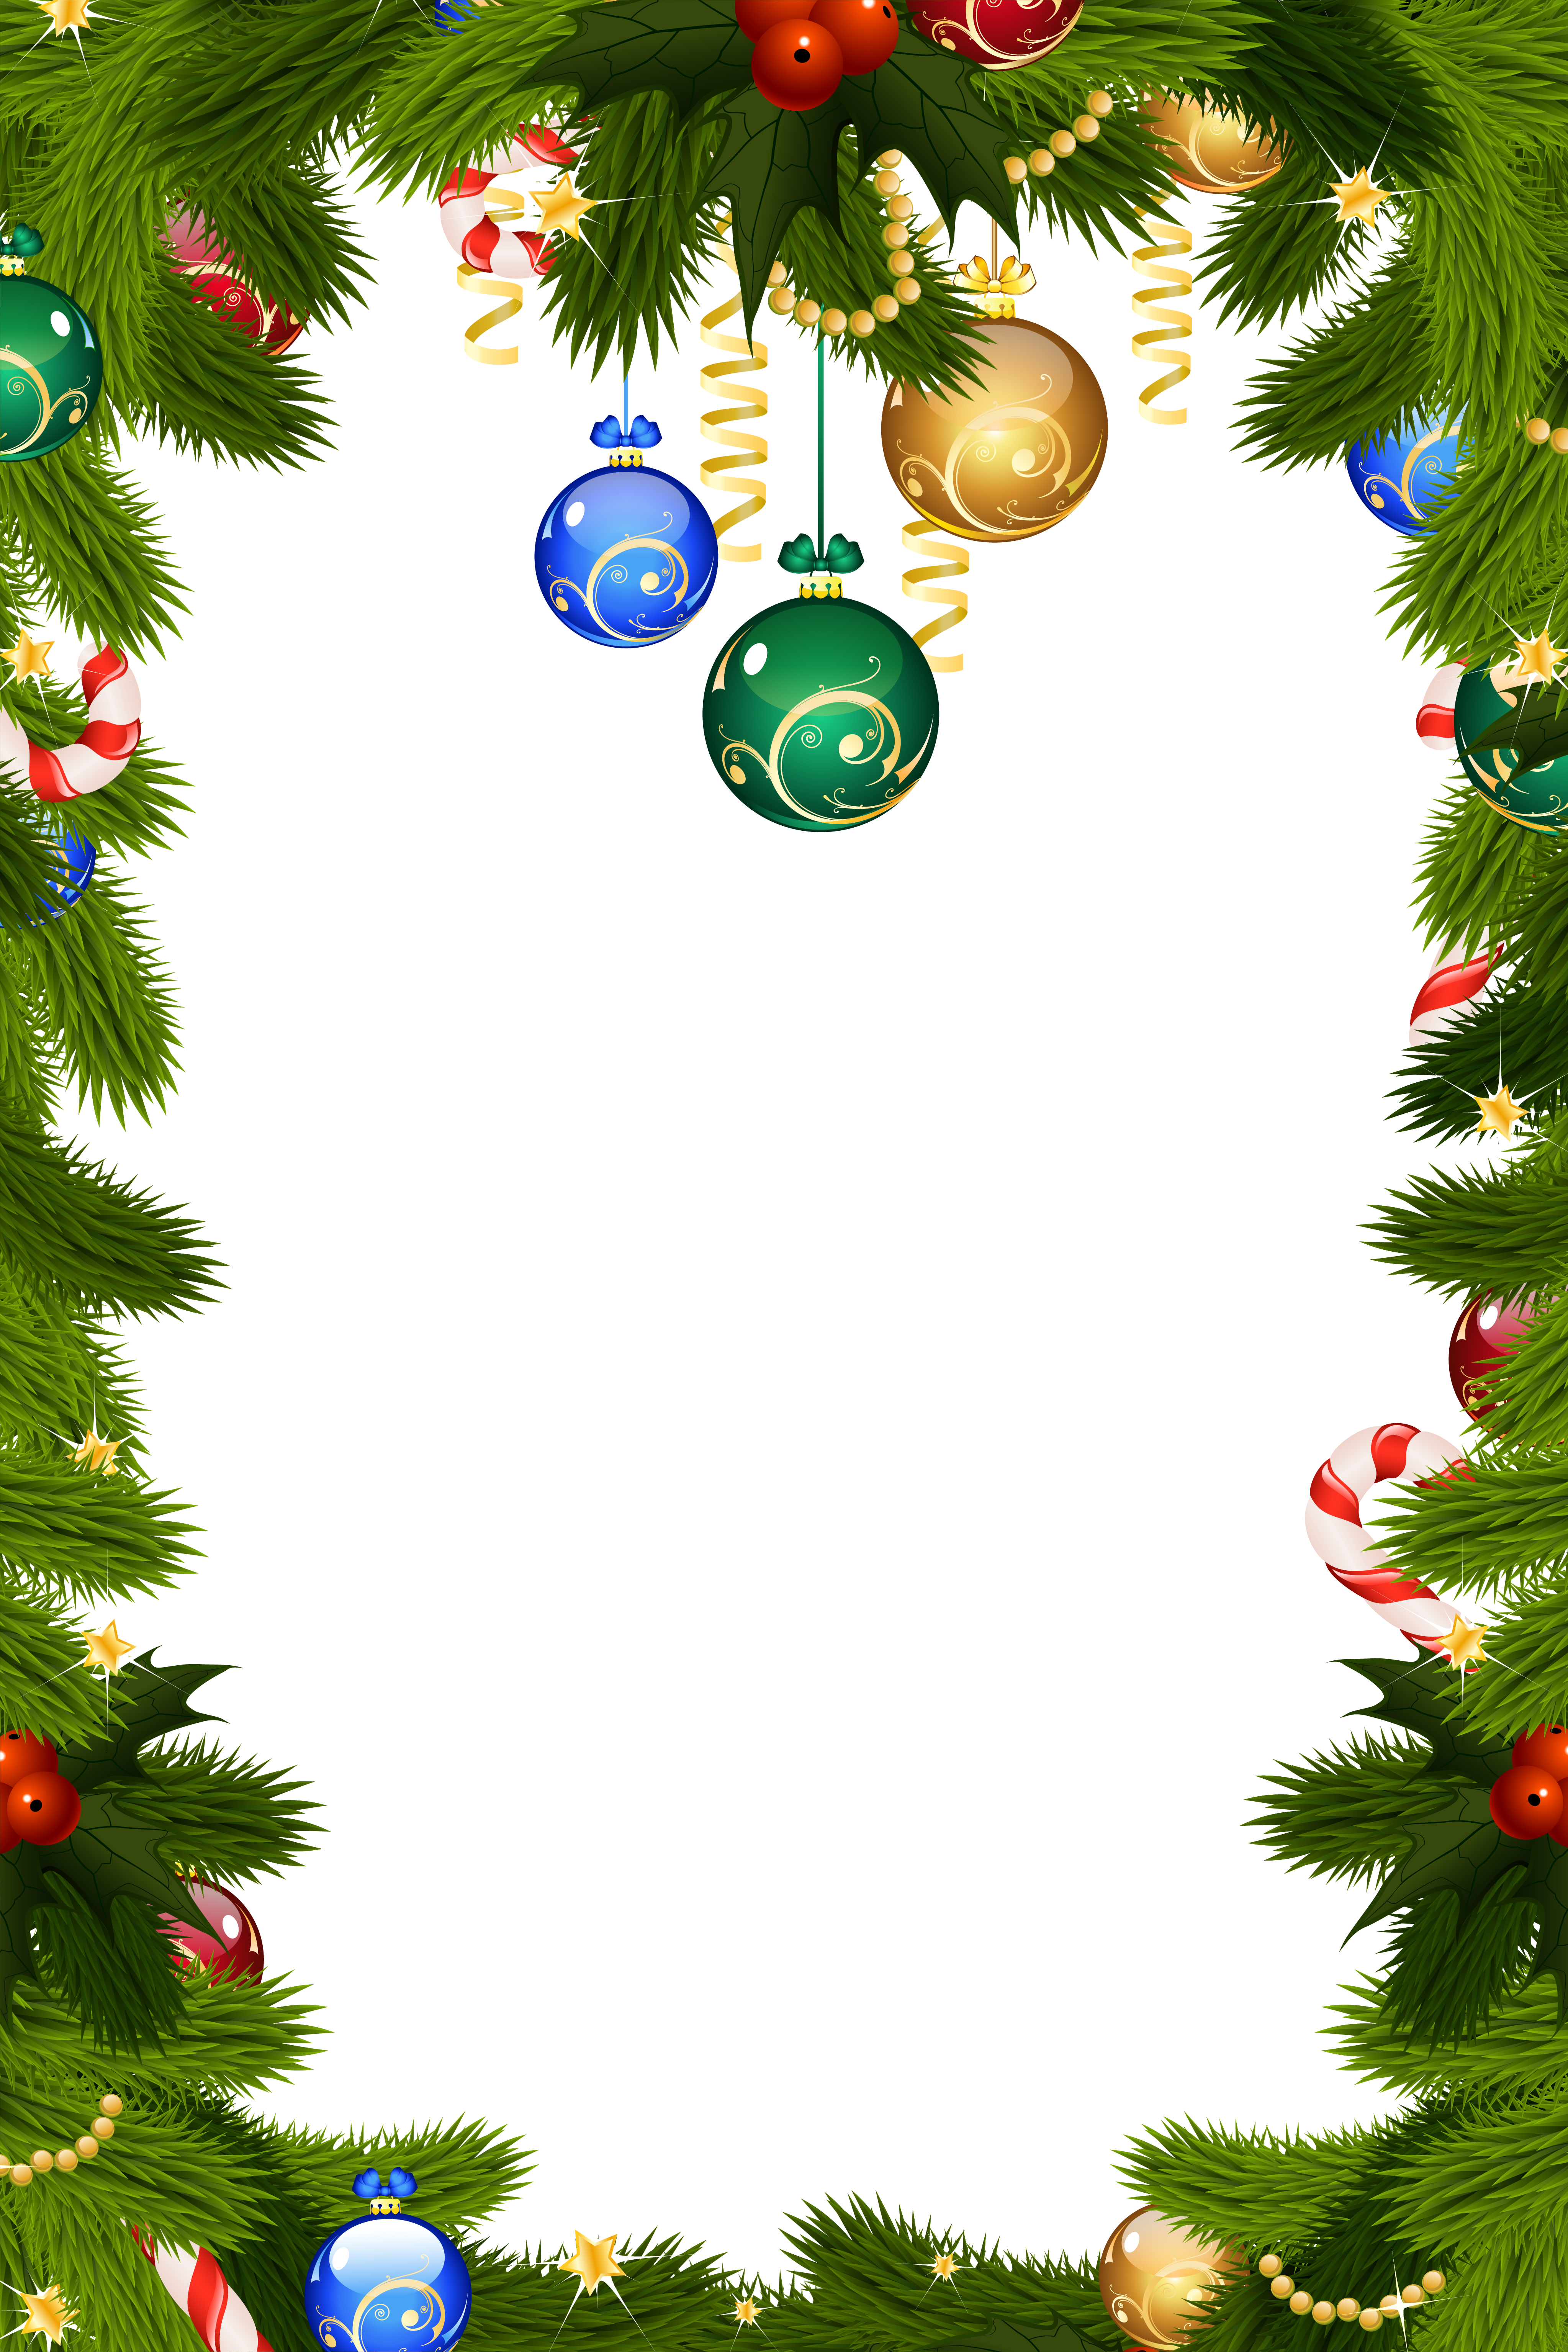 Holidays clipart boarder. Transparent christmas png frame